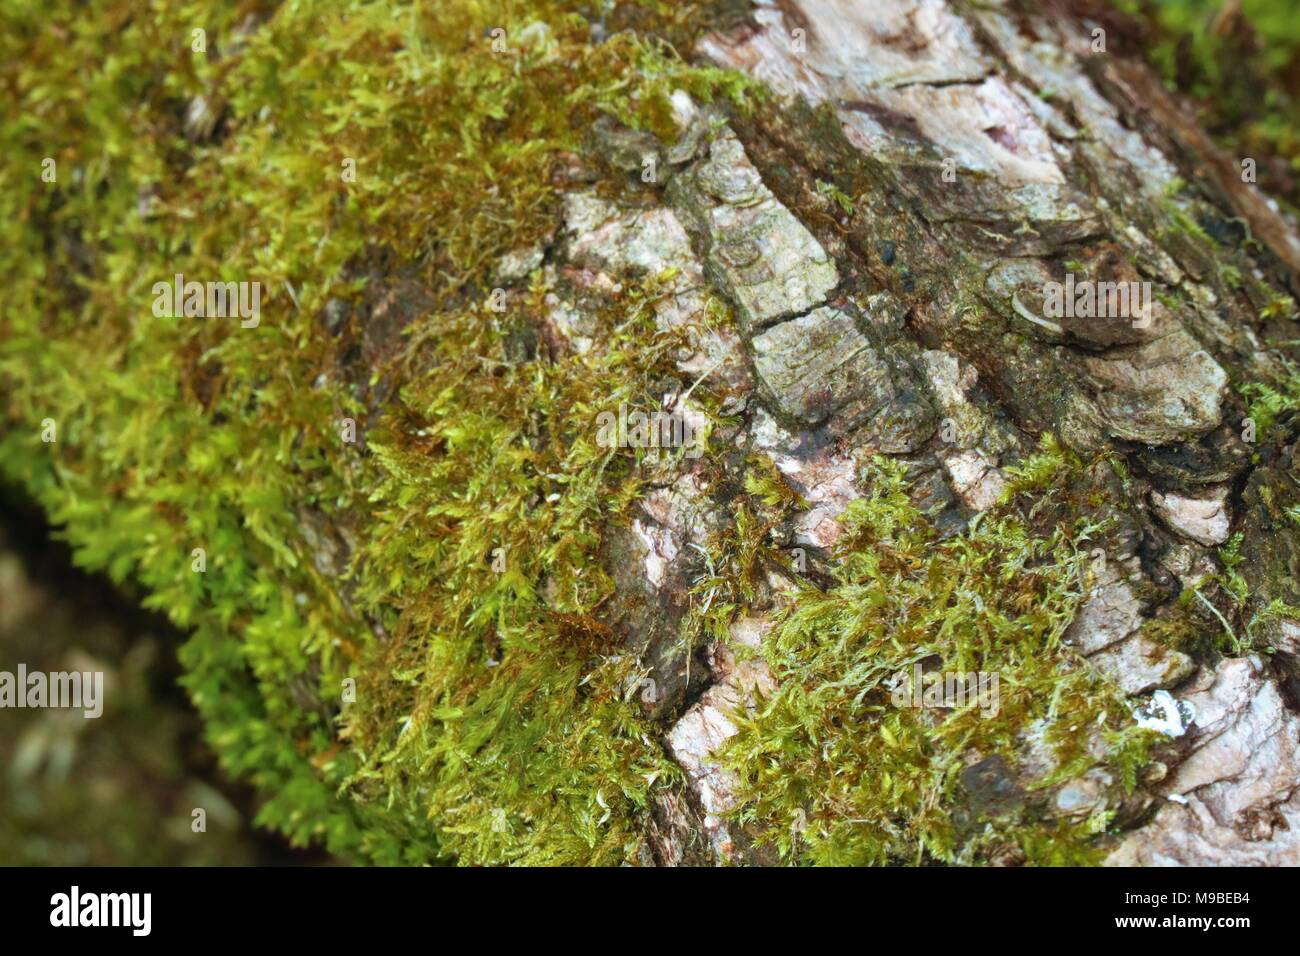 Green moss on a tree trunk in Spring - Stock Image